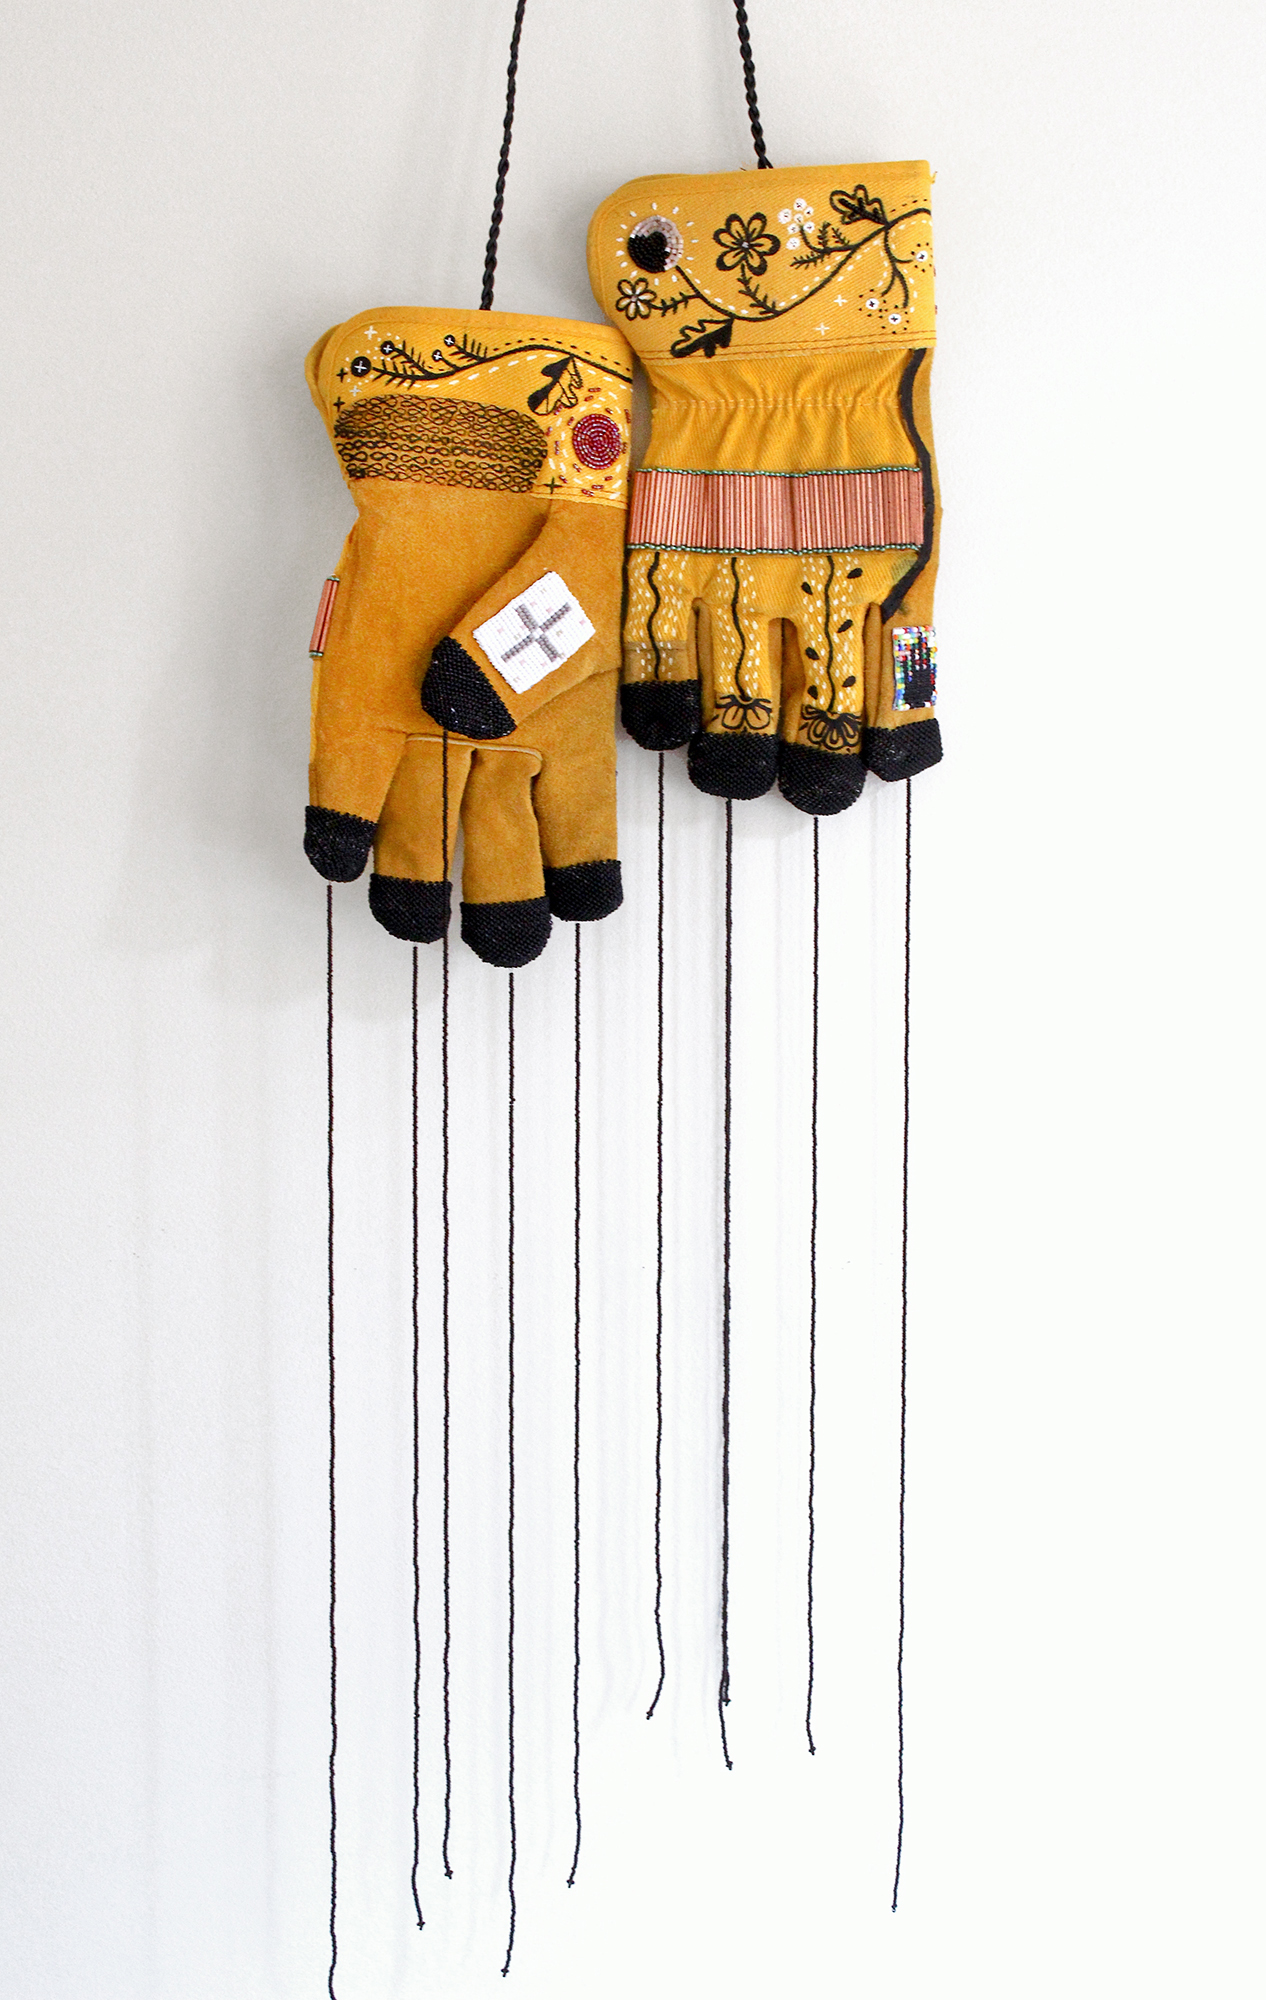 Rooting Gloves, 2019